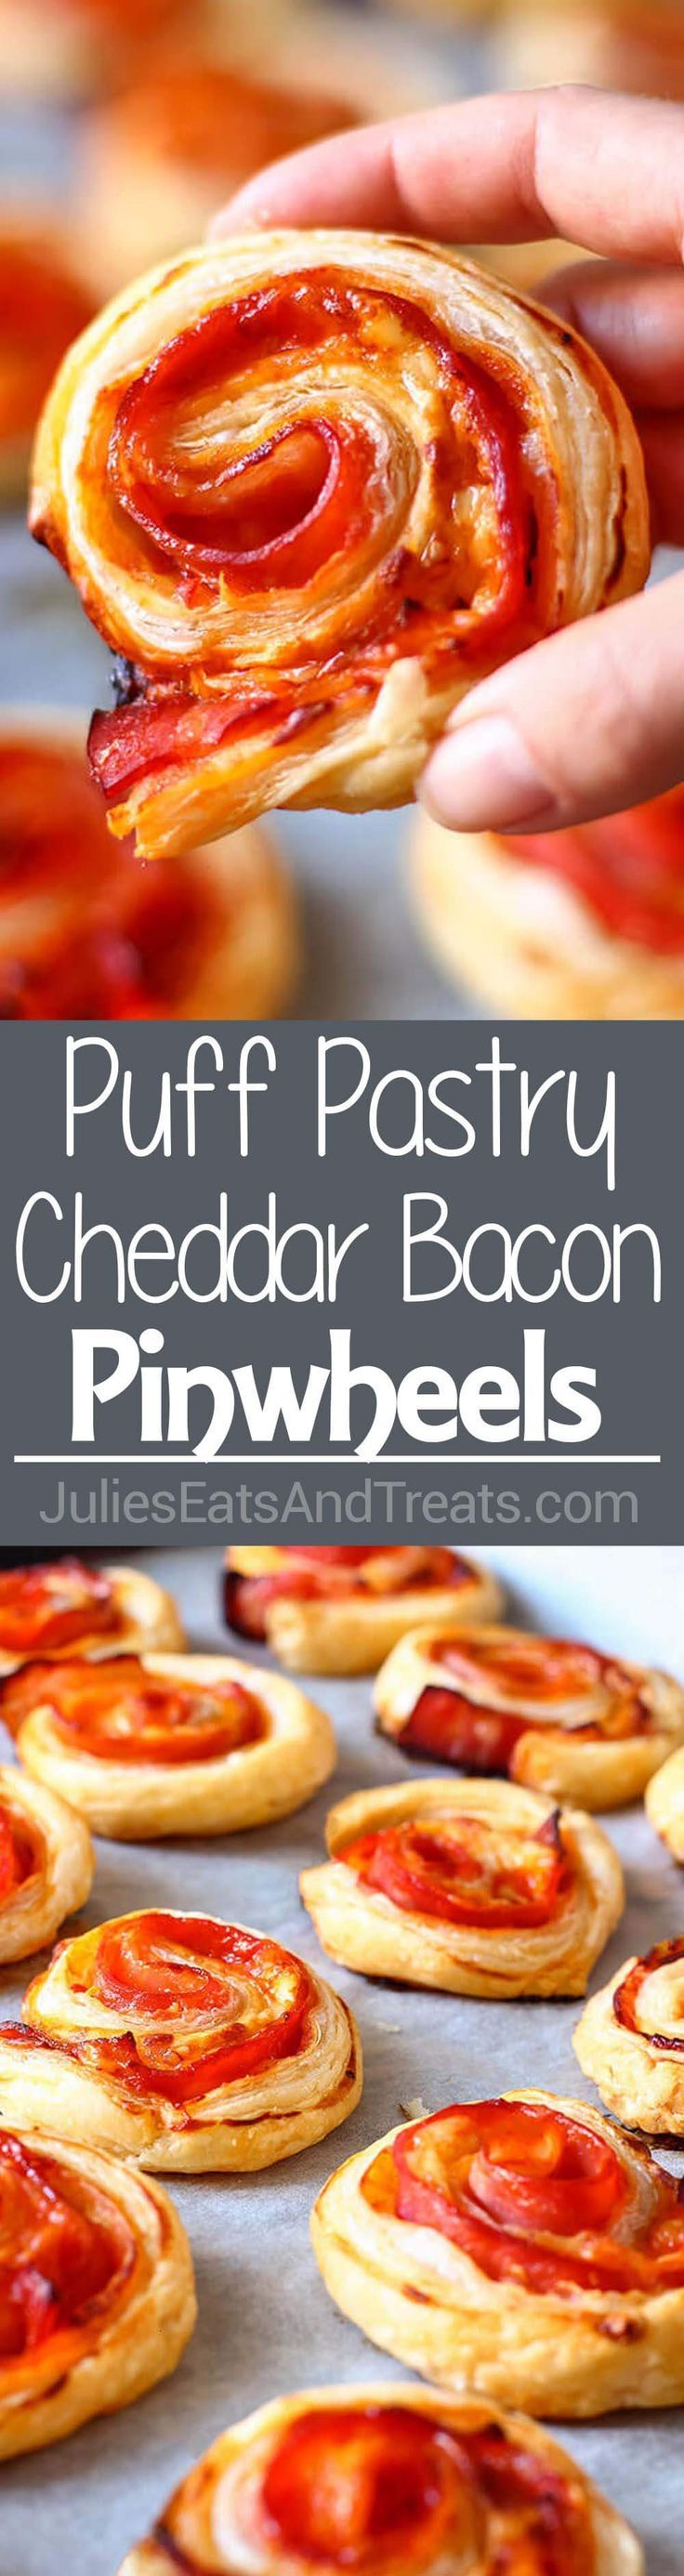 Puff Pastry Bacon Pinwheels with Cheddar ~ Easy and Fast Puff Pastry Appetizer with Bacon and Cheese! Perfect for Parties and Family Gatherings! via /julieseats/